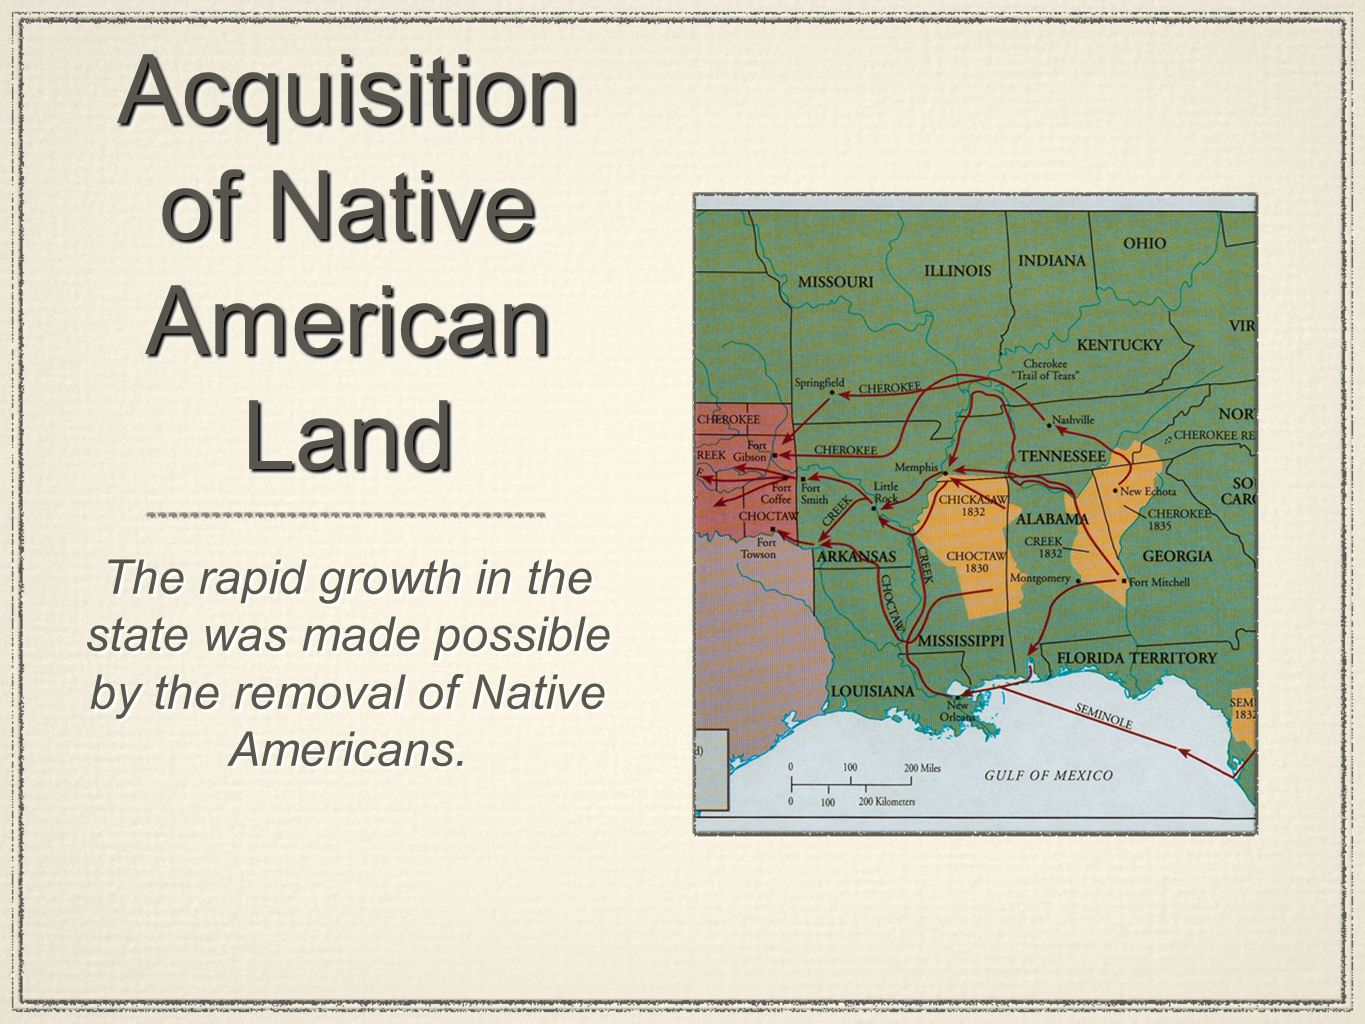 Acquisition of Native American Land